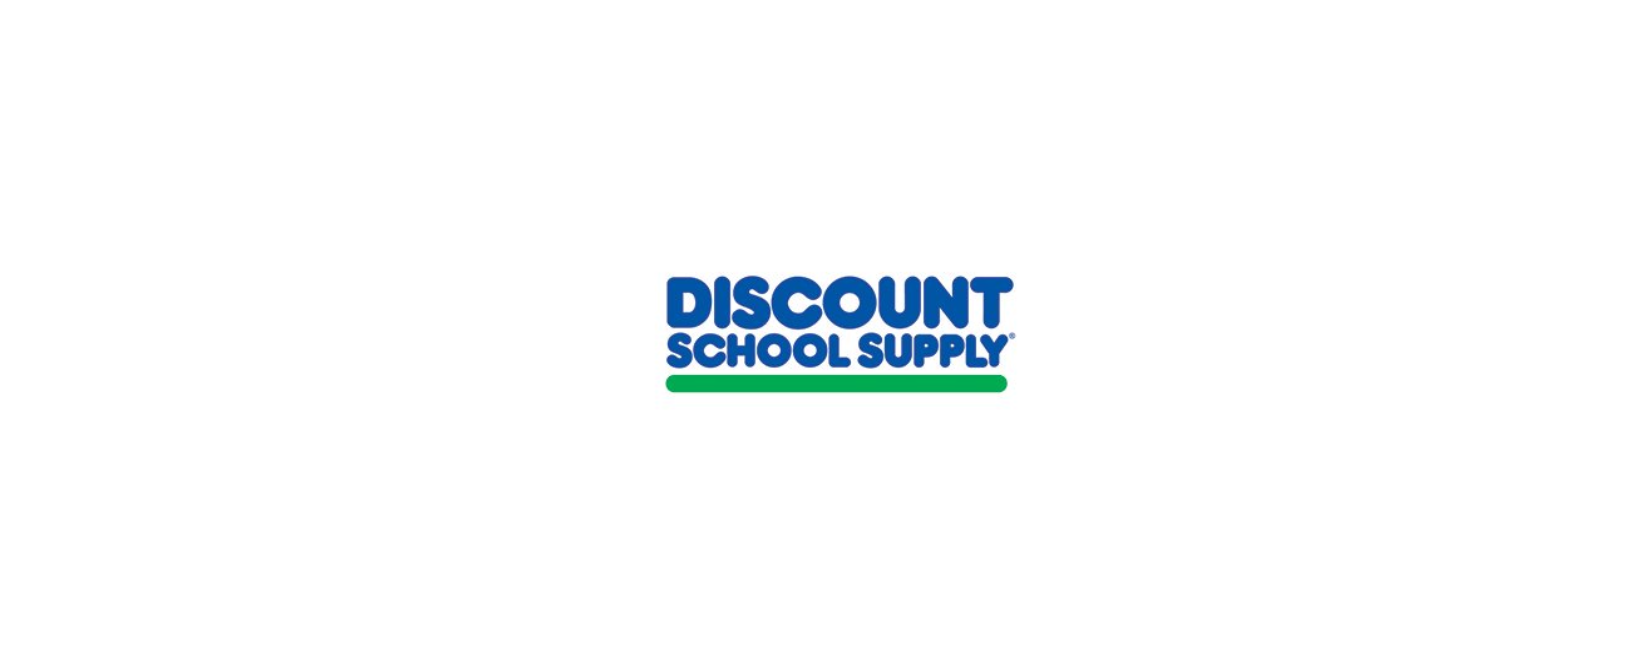 Discount School Supply Review 2021